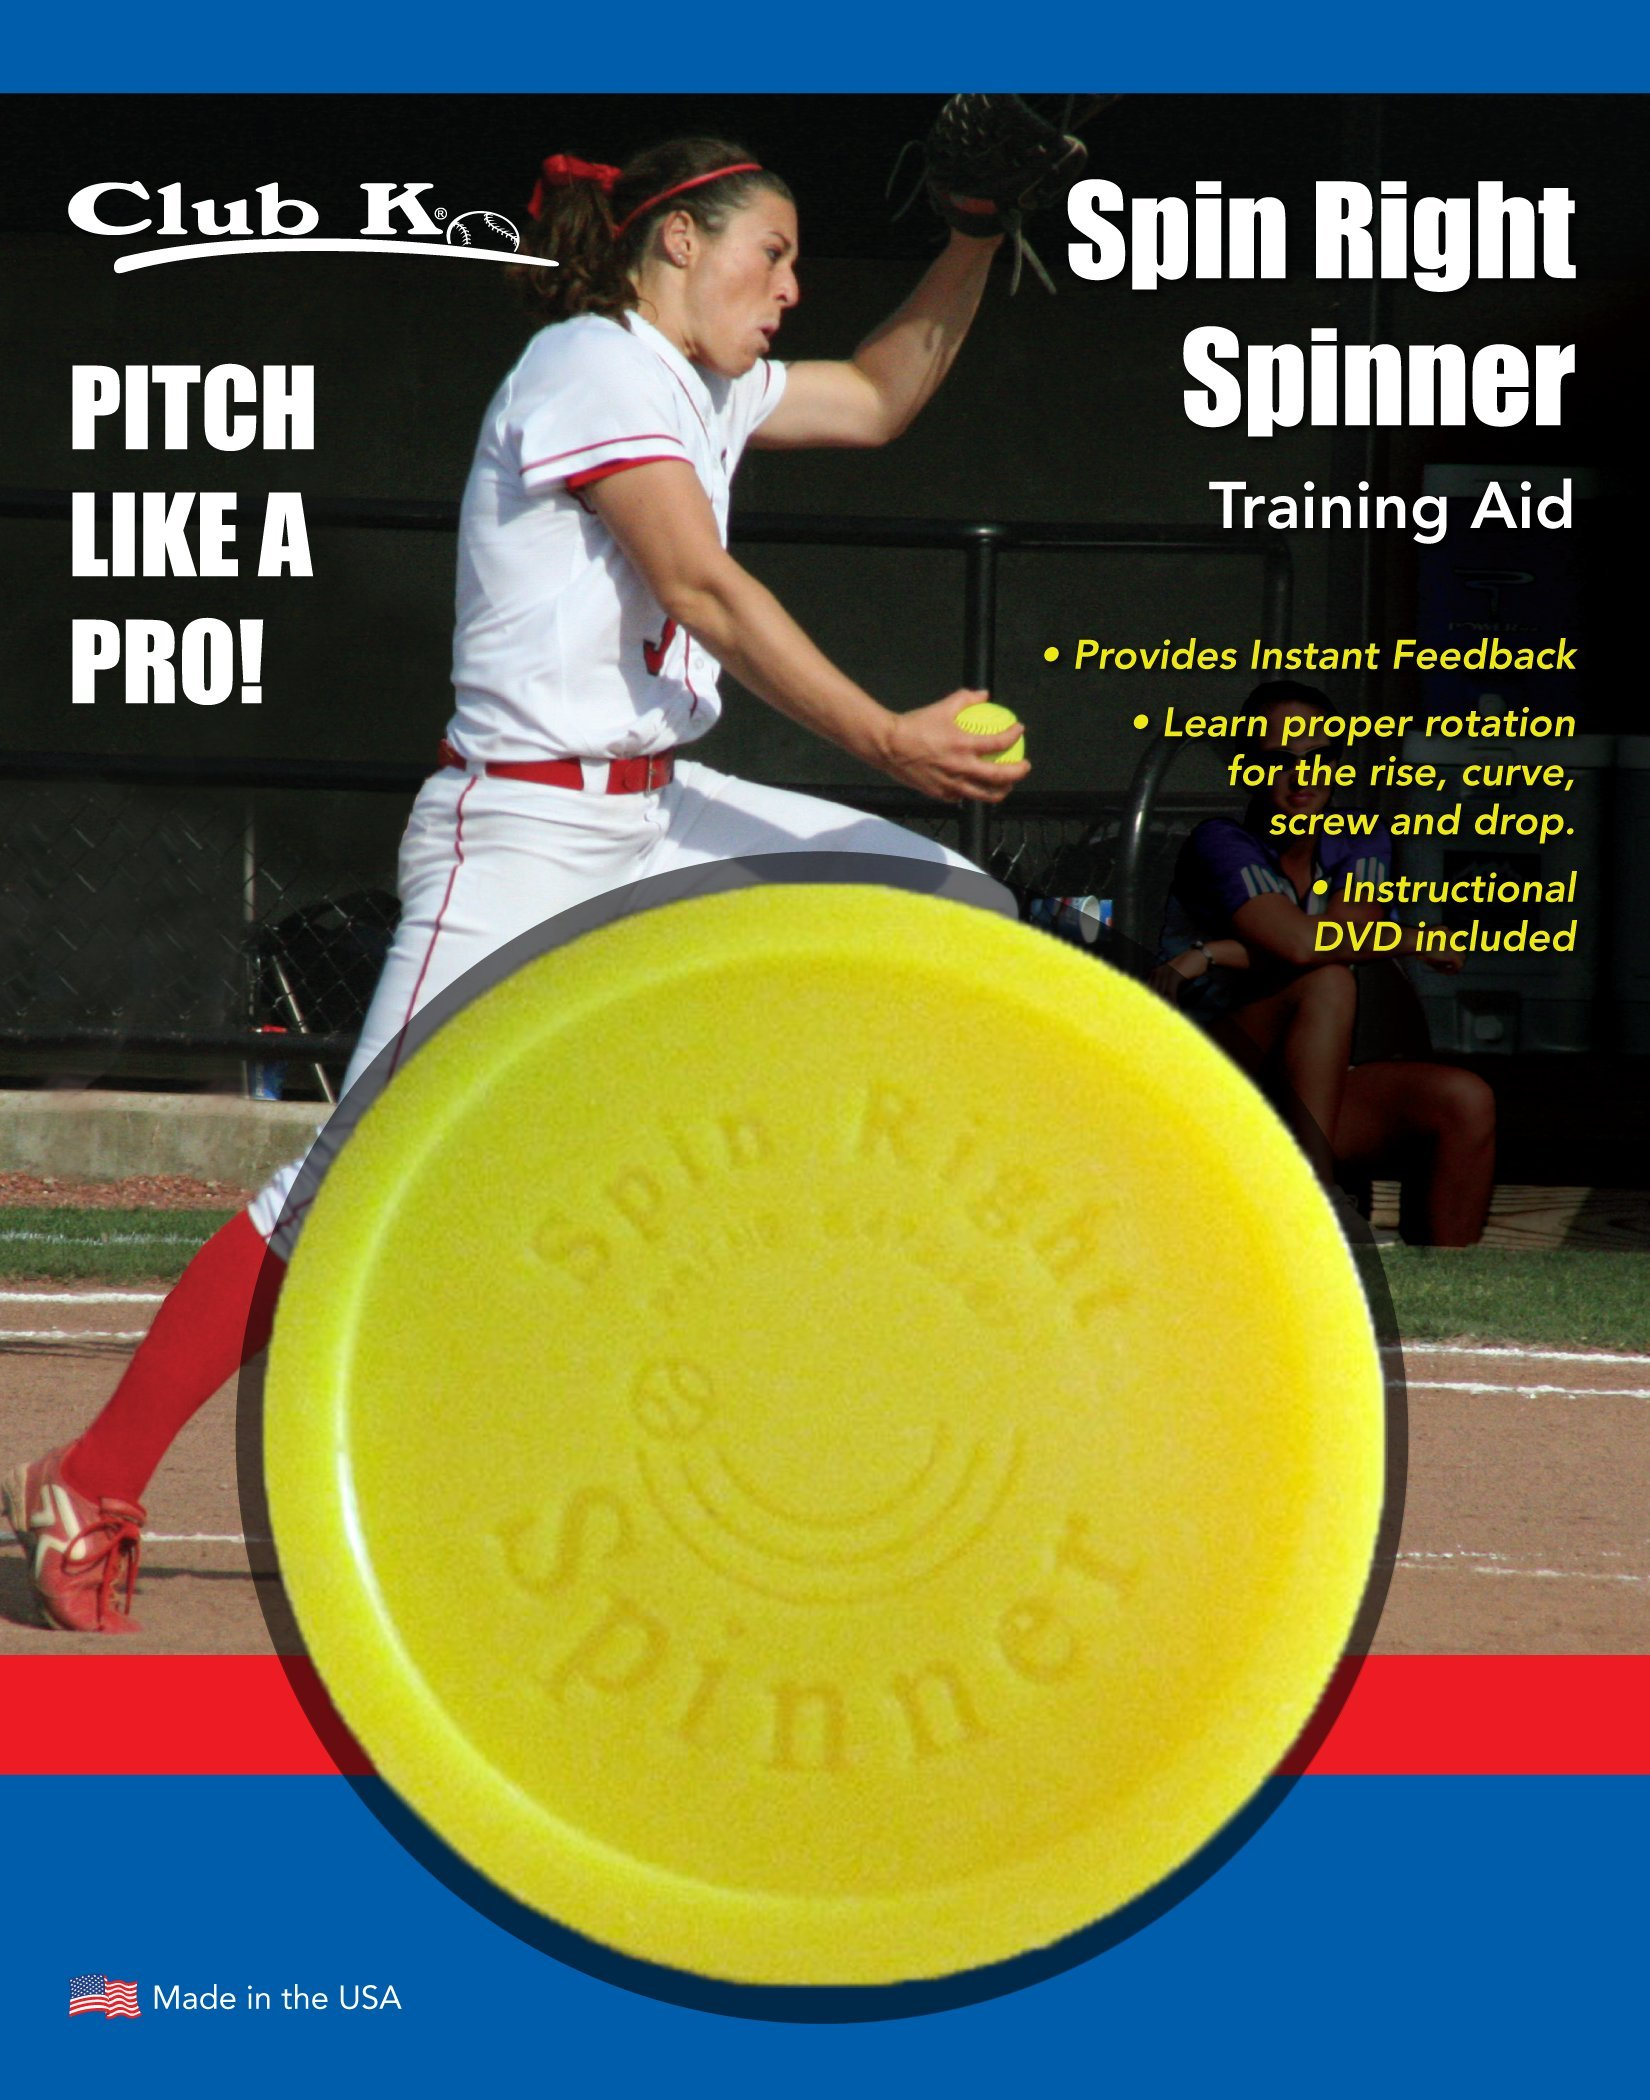 SPIN RIGHT SPINNER & Ernie Parker's WRIST SNAPPER Fastpitch Softball Pitching Training Aids Equipment by Buckeye Nation Sales (Image #2)